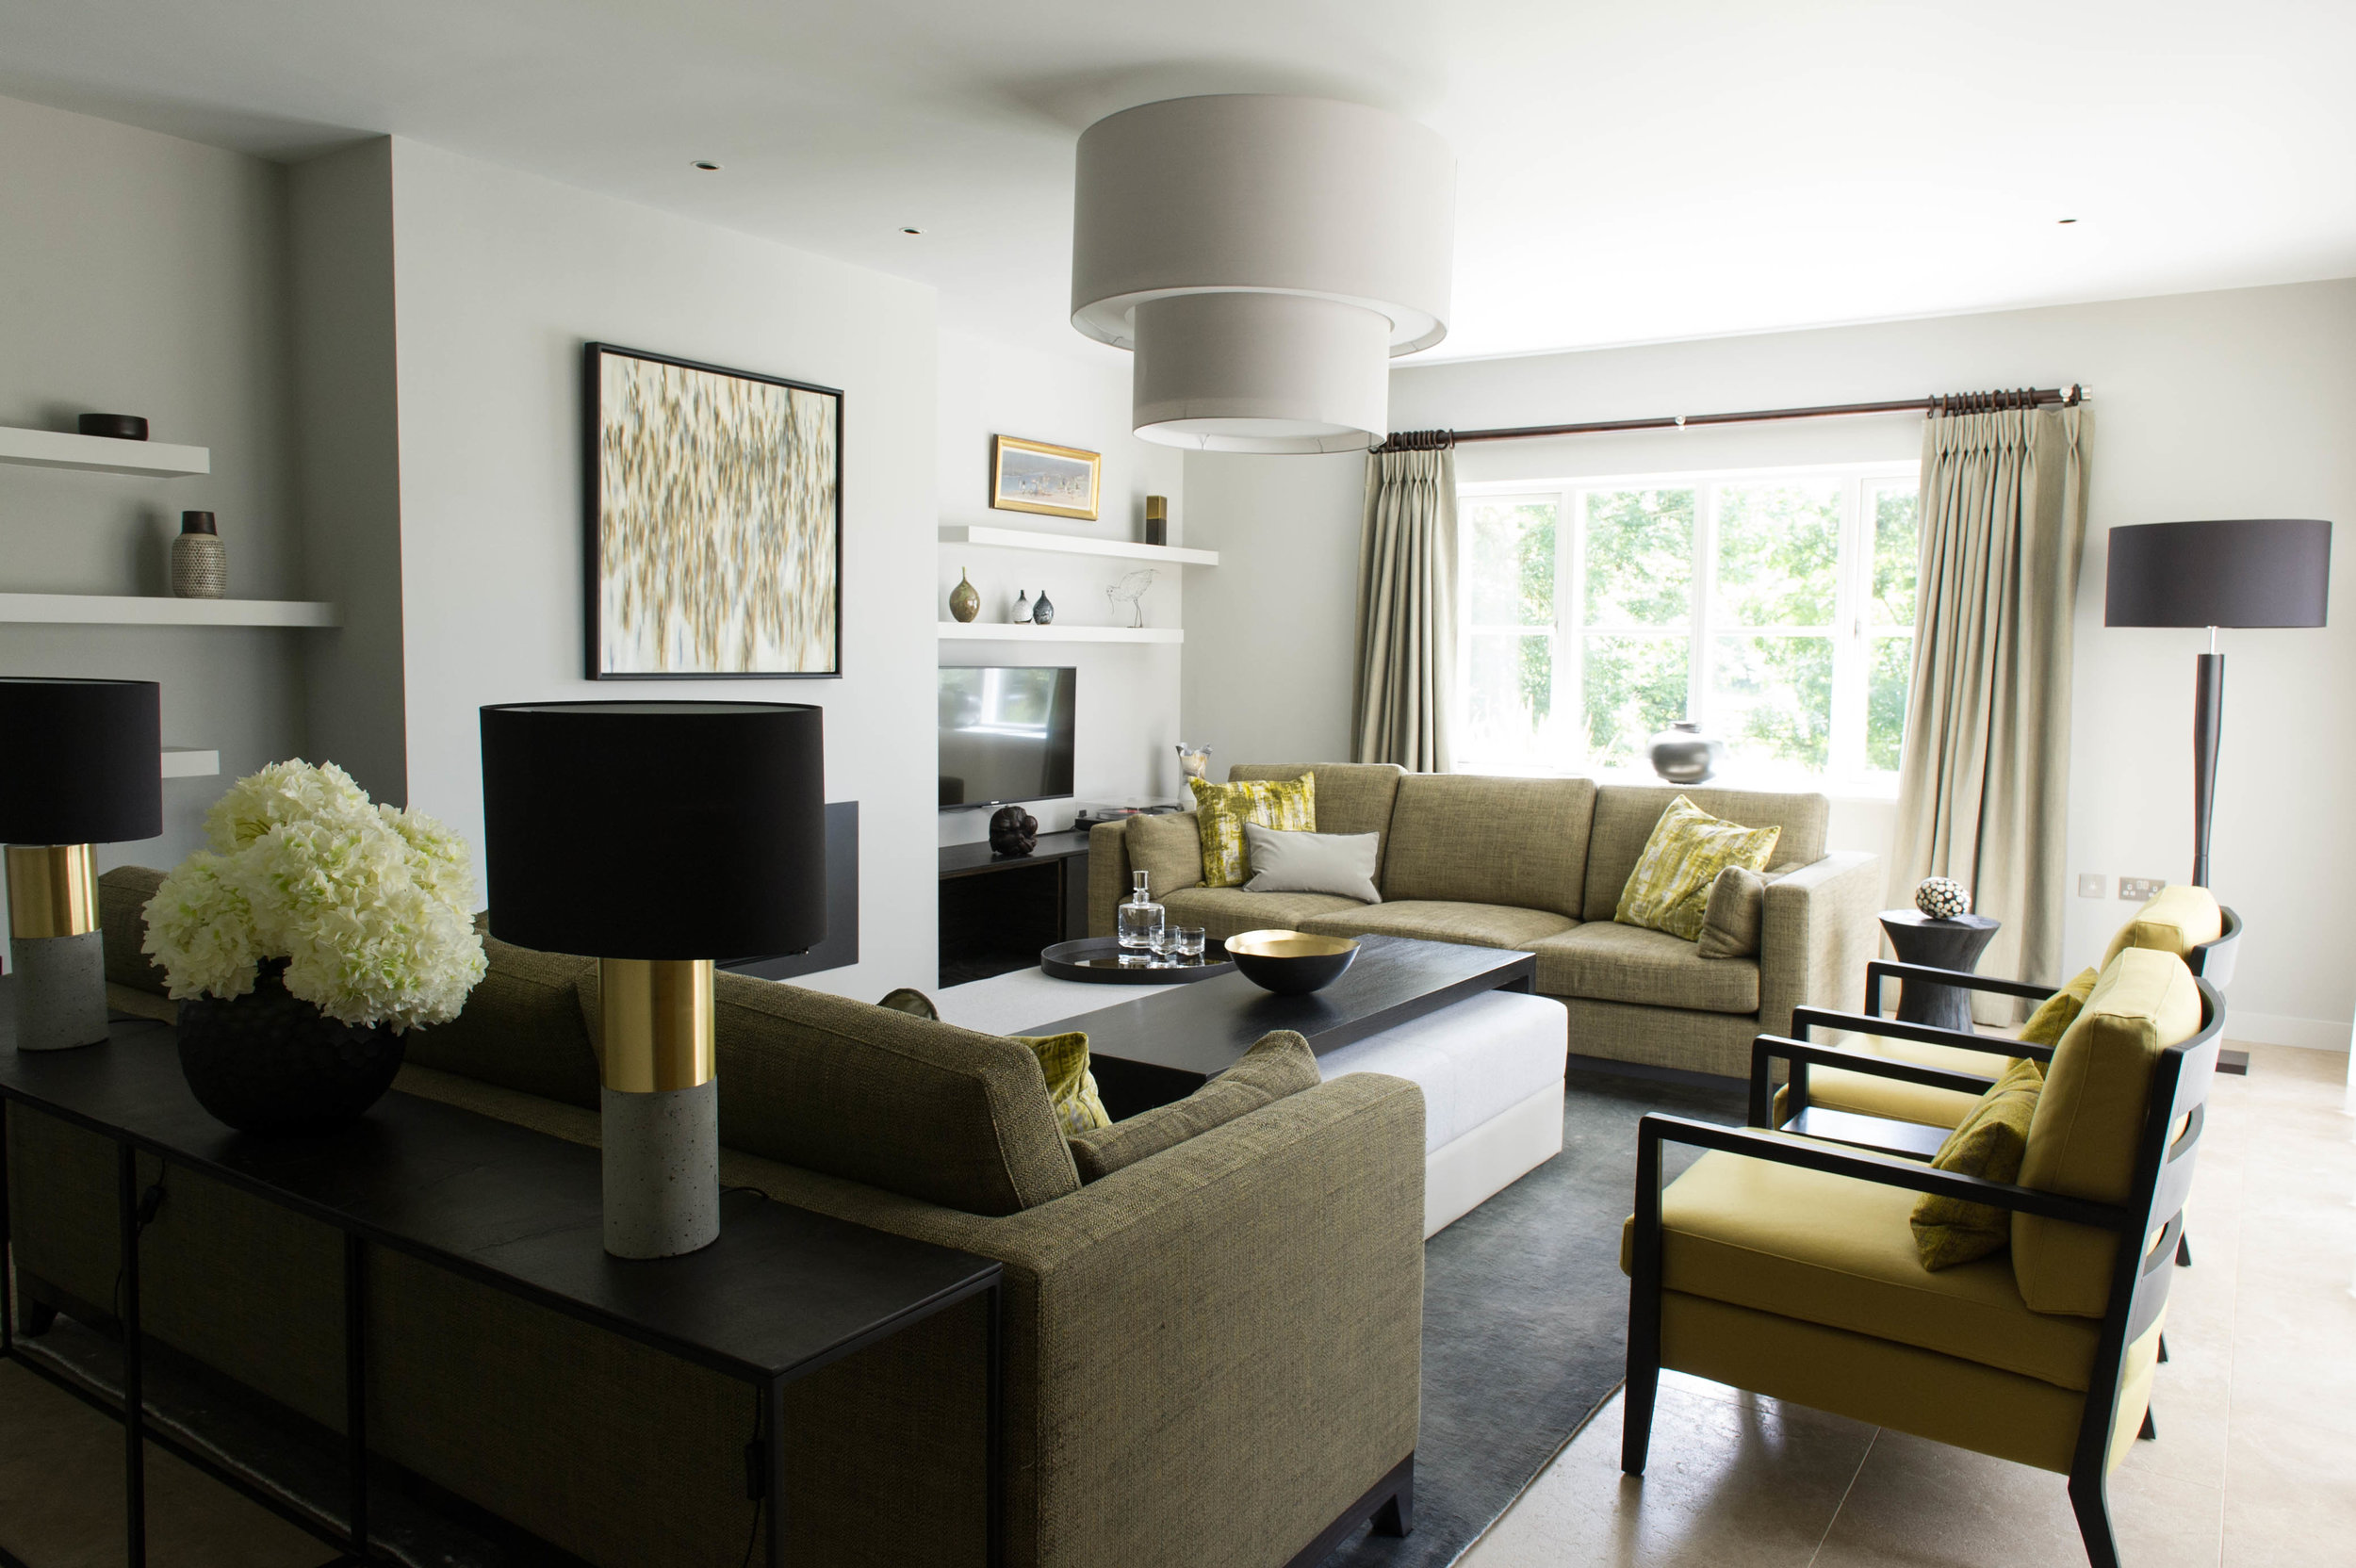 Sitting room in chartreuse tones with console table dressed with vase of hydrangeas and concrete and brass table lamps, pair of sofas, pair of armchairs, ottoman with bespoke coffee table, side table and floor lamp.By Joseph Interior Design, Cheltenham.